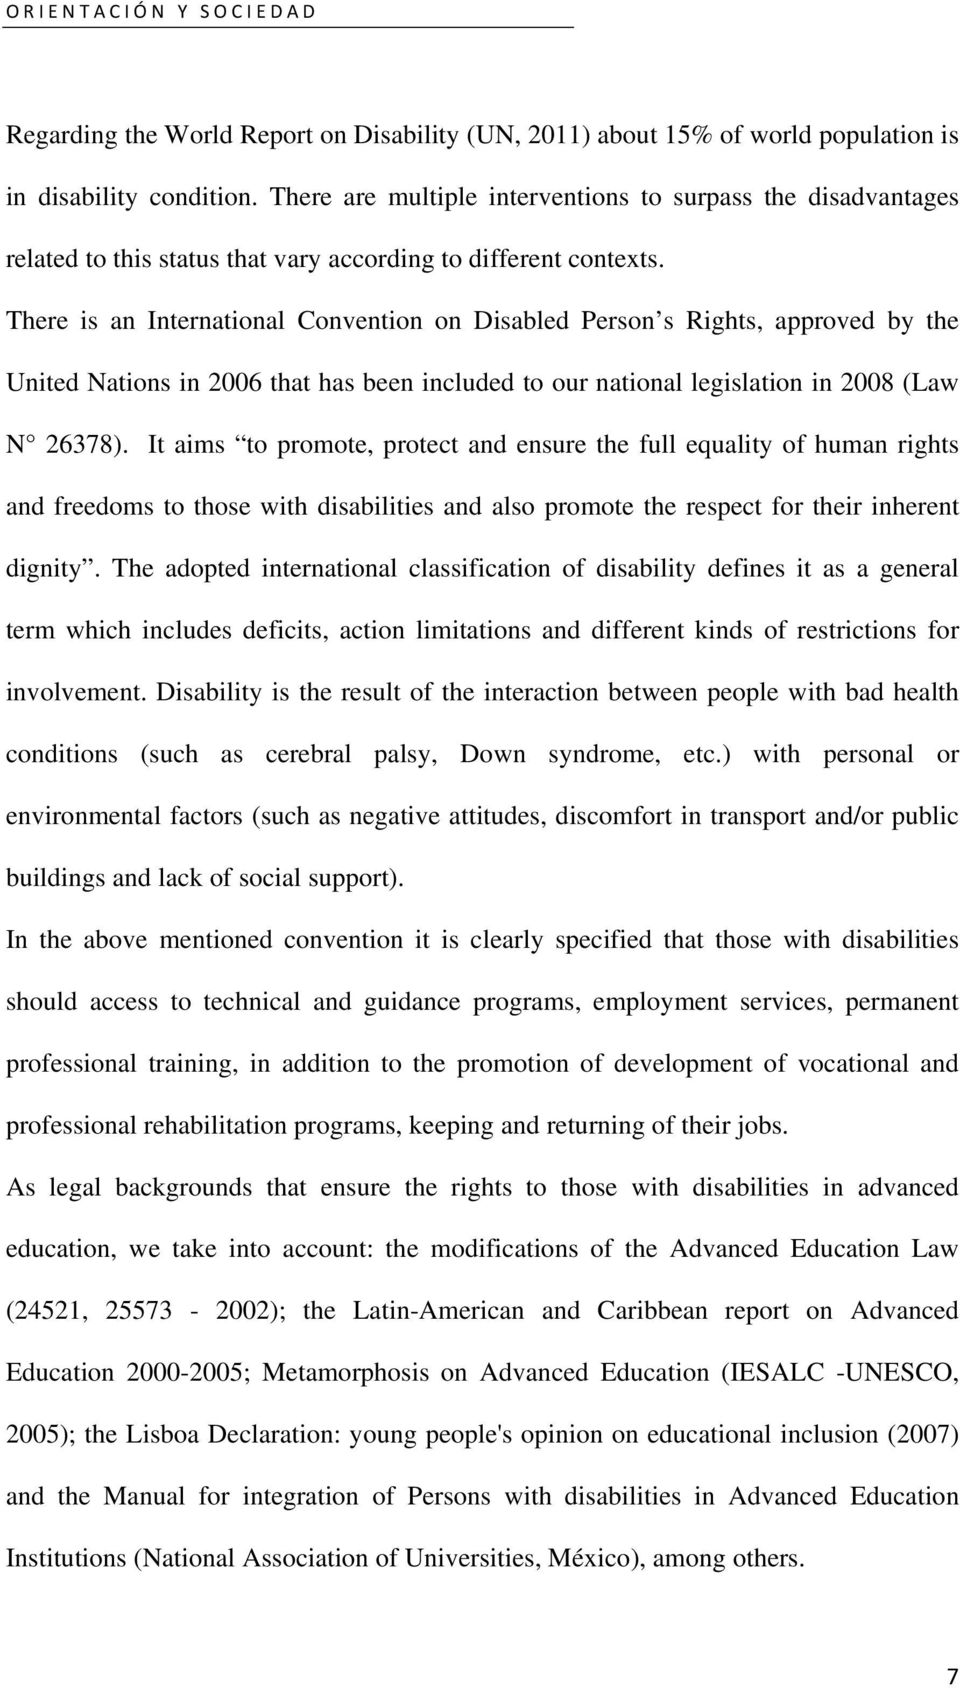 There is an International Convention on Disabled Person s Rights, approved by the United Nations in 2006 that has been included to our national legislation in 2008 (Law N 26378).